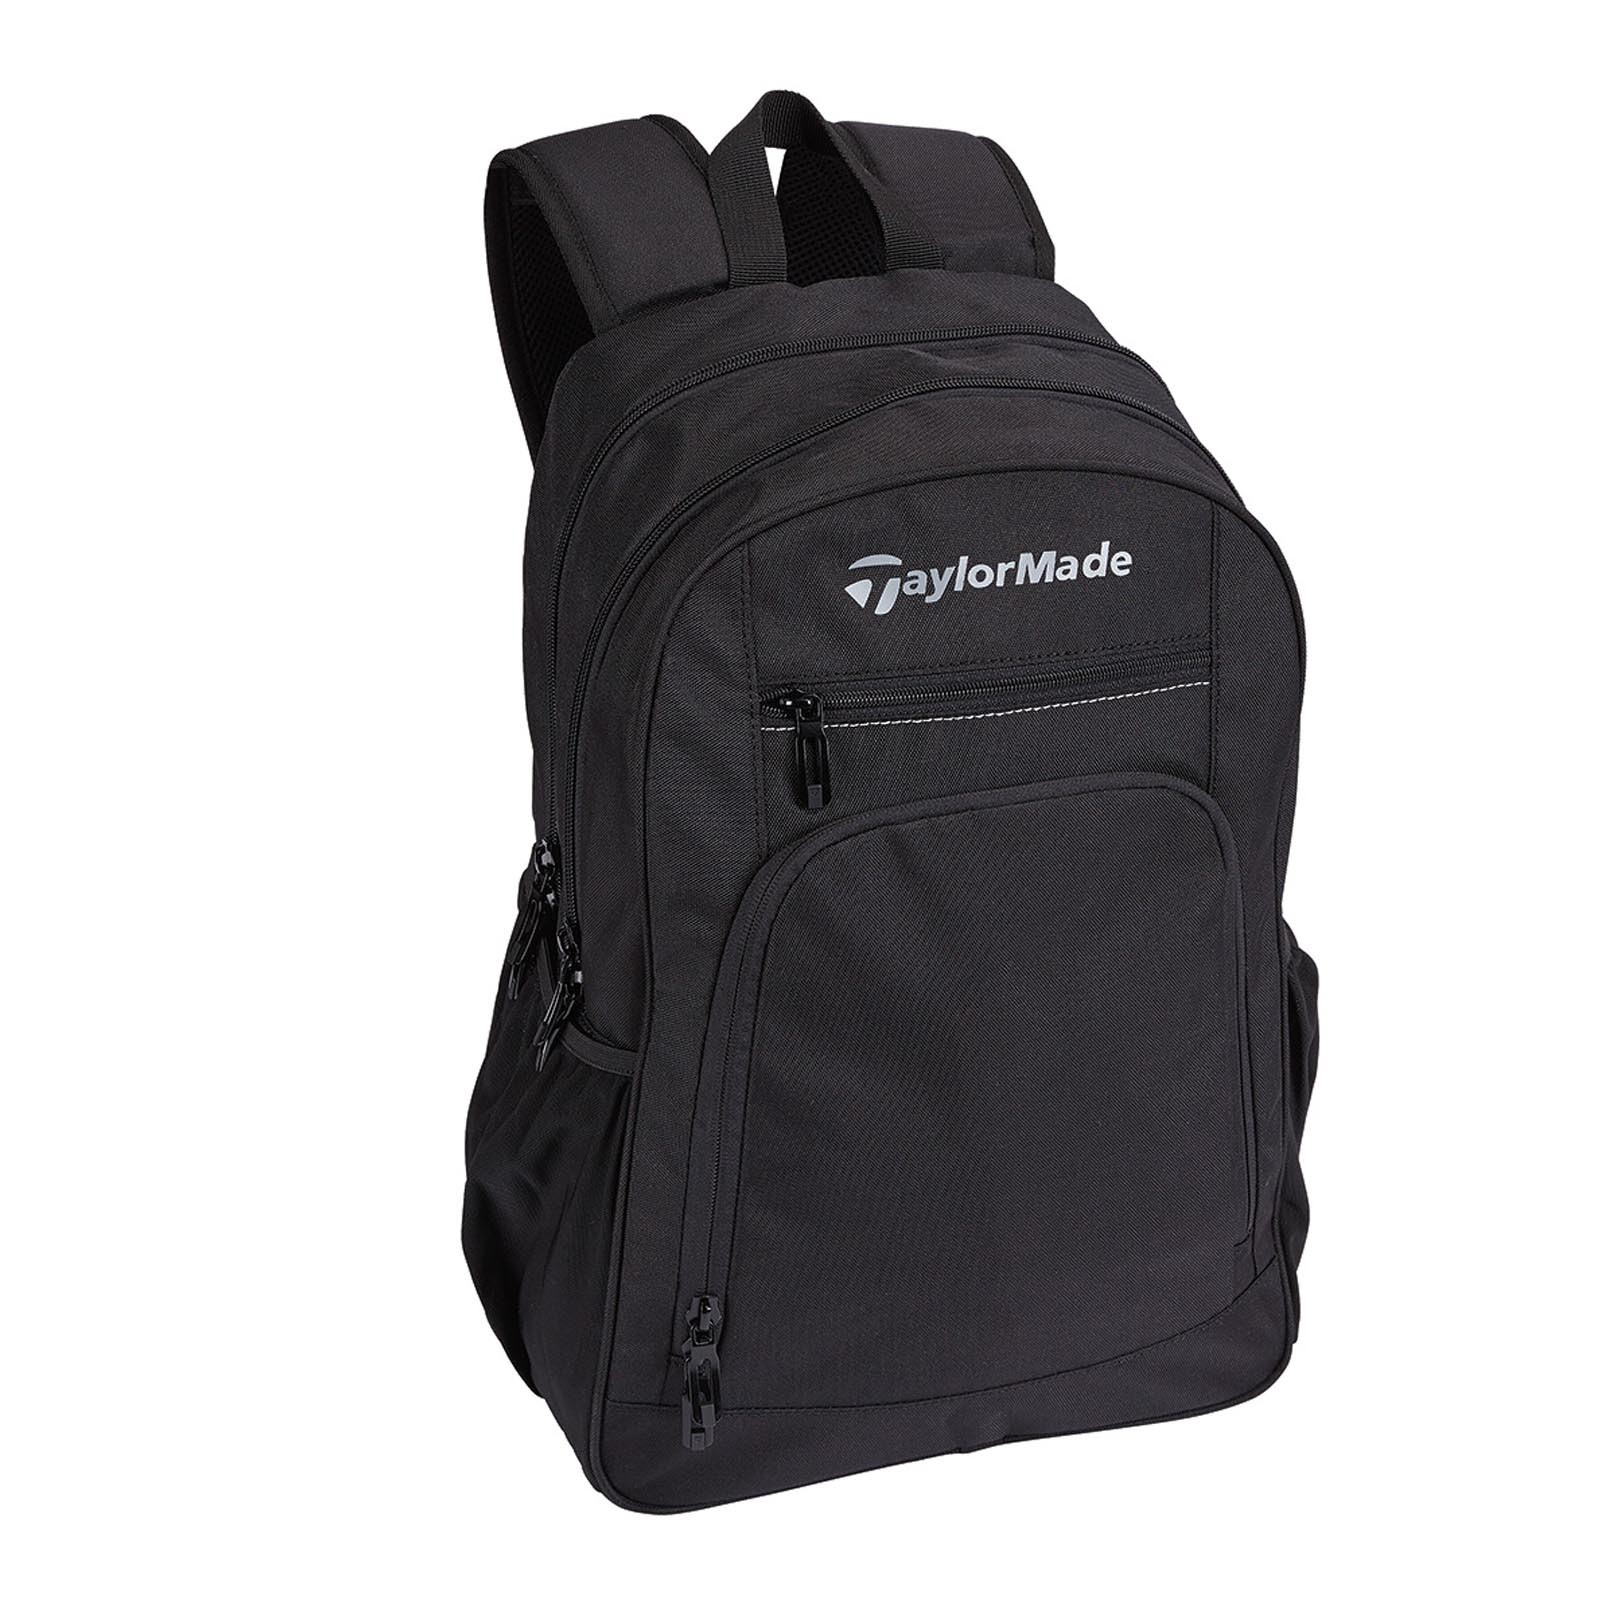 TaylorMade Performance Backpacks